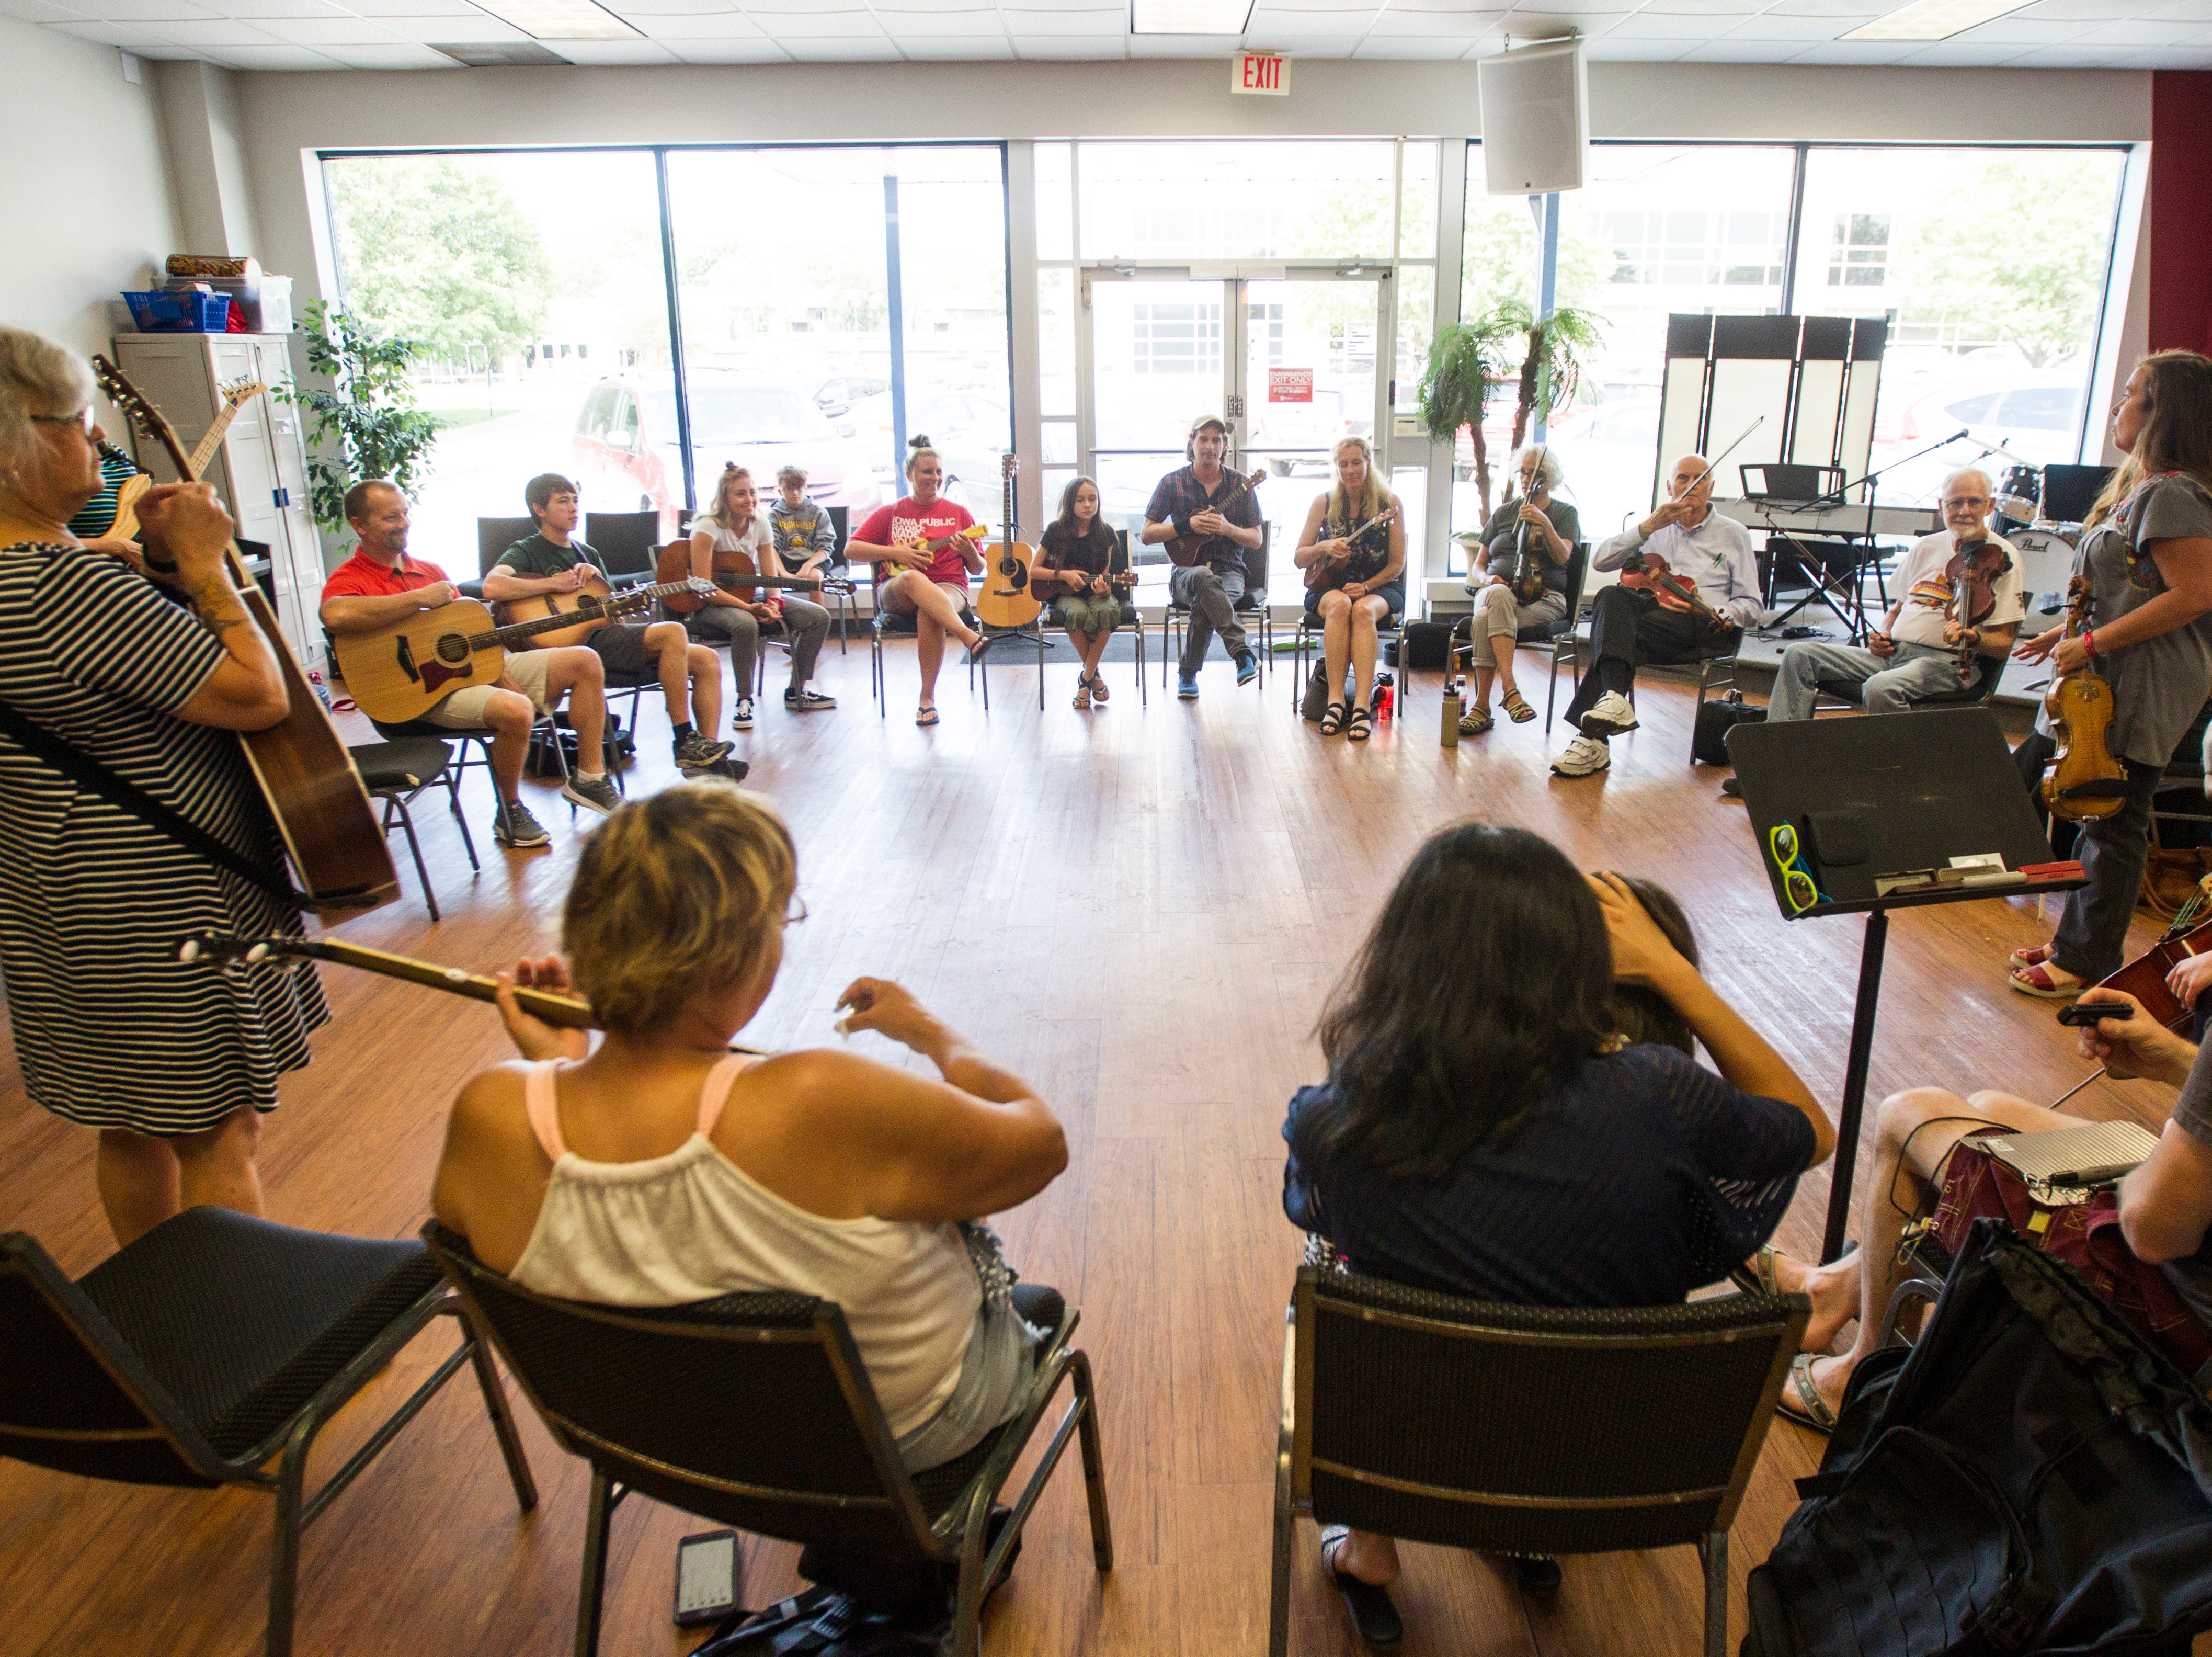 """Savage Hearts trio members, Tracy Lynn, far left, and Annie Savage, far right, give instructions during a free """"Learn to Jam Bluegrass Workshop"""" on Wednesday, July 25, 2018, at West Music in Coralville, Iowa. Savage was joined by the other two members of the Savage Hearts trio during the two hour workshop."""